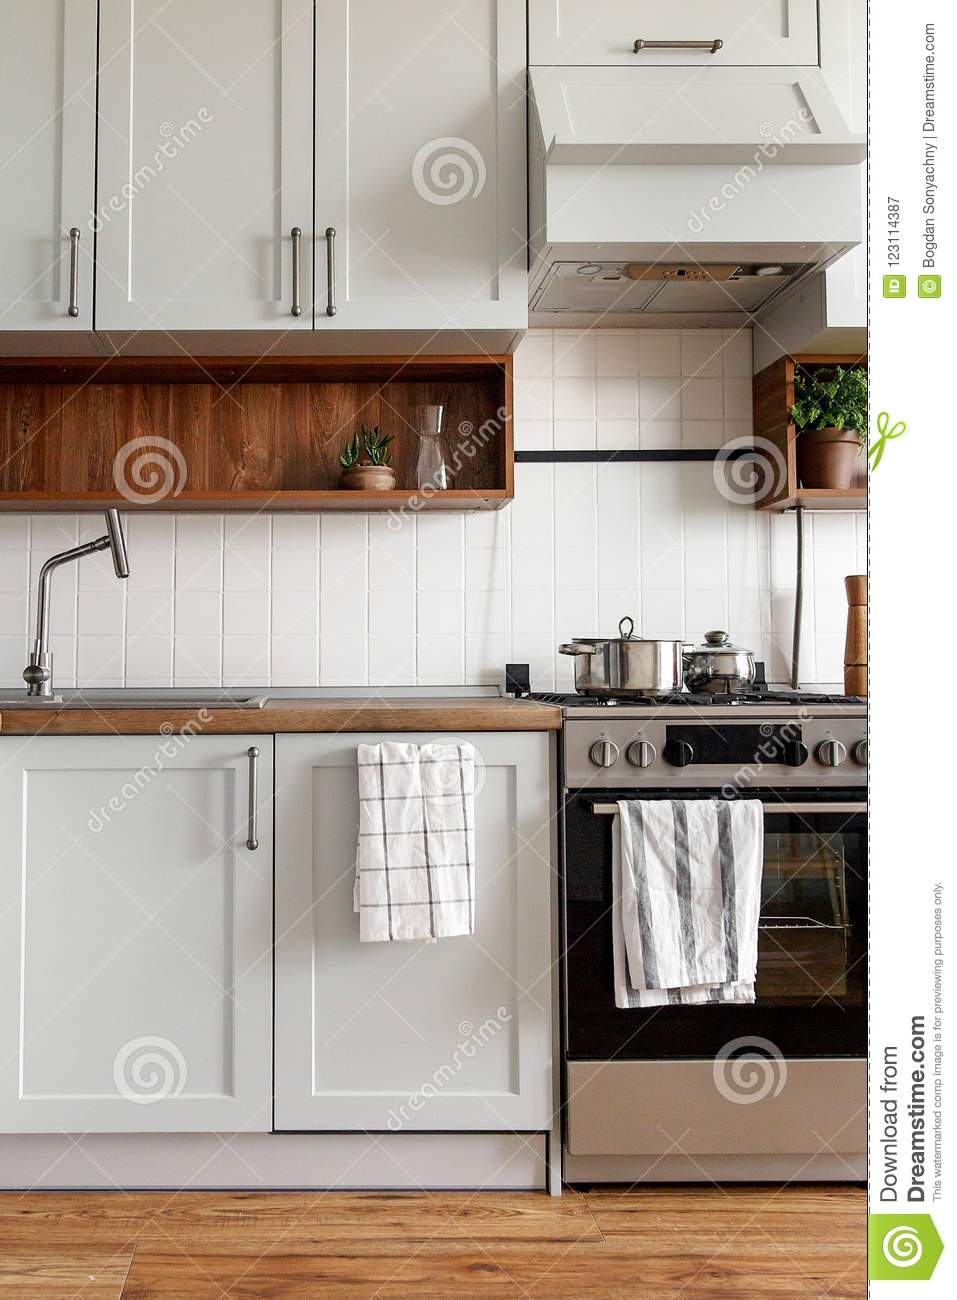 Stylish Gray Kitchen Interior With Modern Doors And Stainless St Stock Image Image Of Cooker Clean 123114387